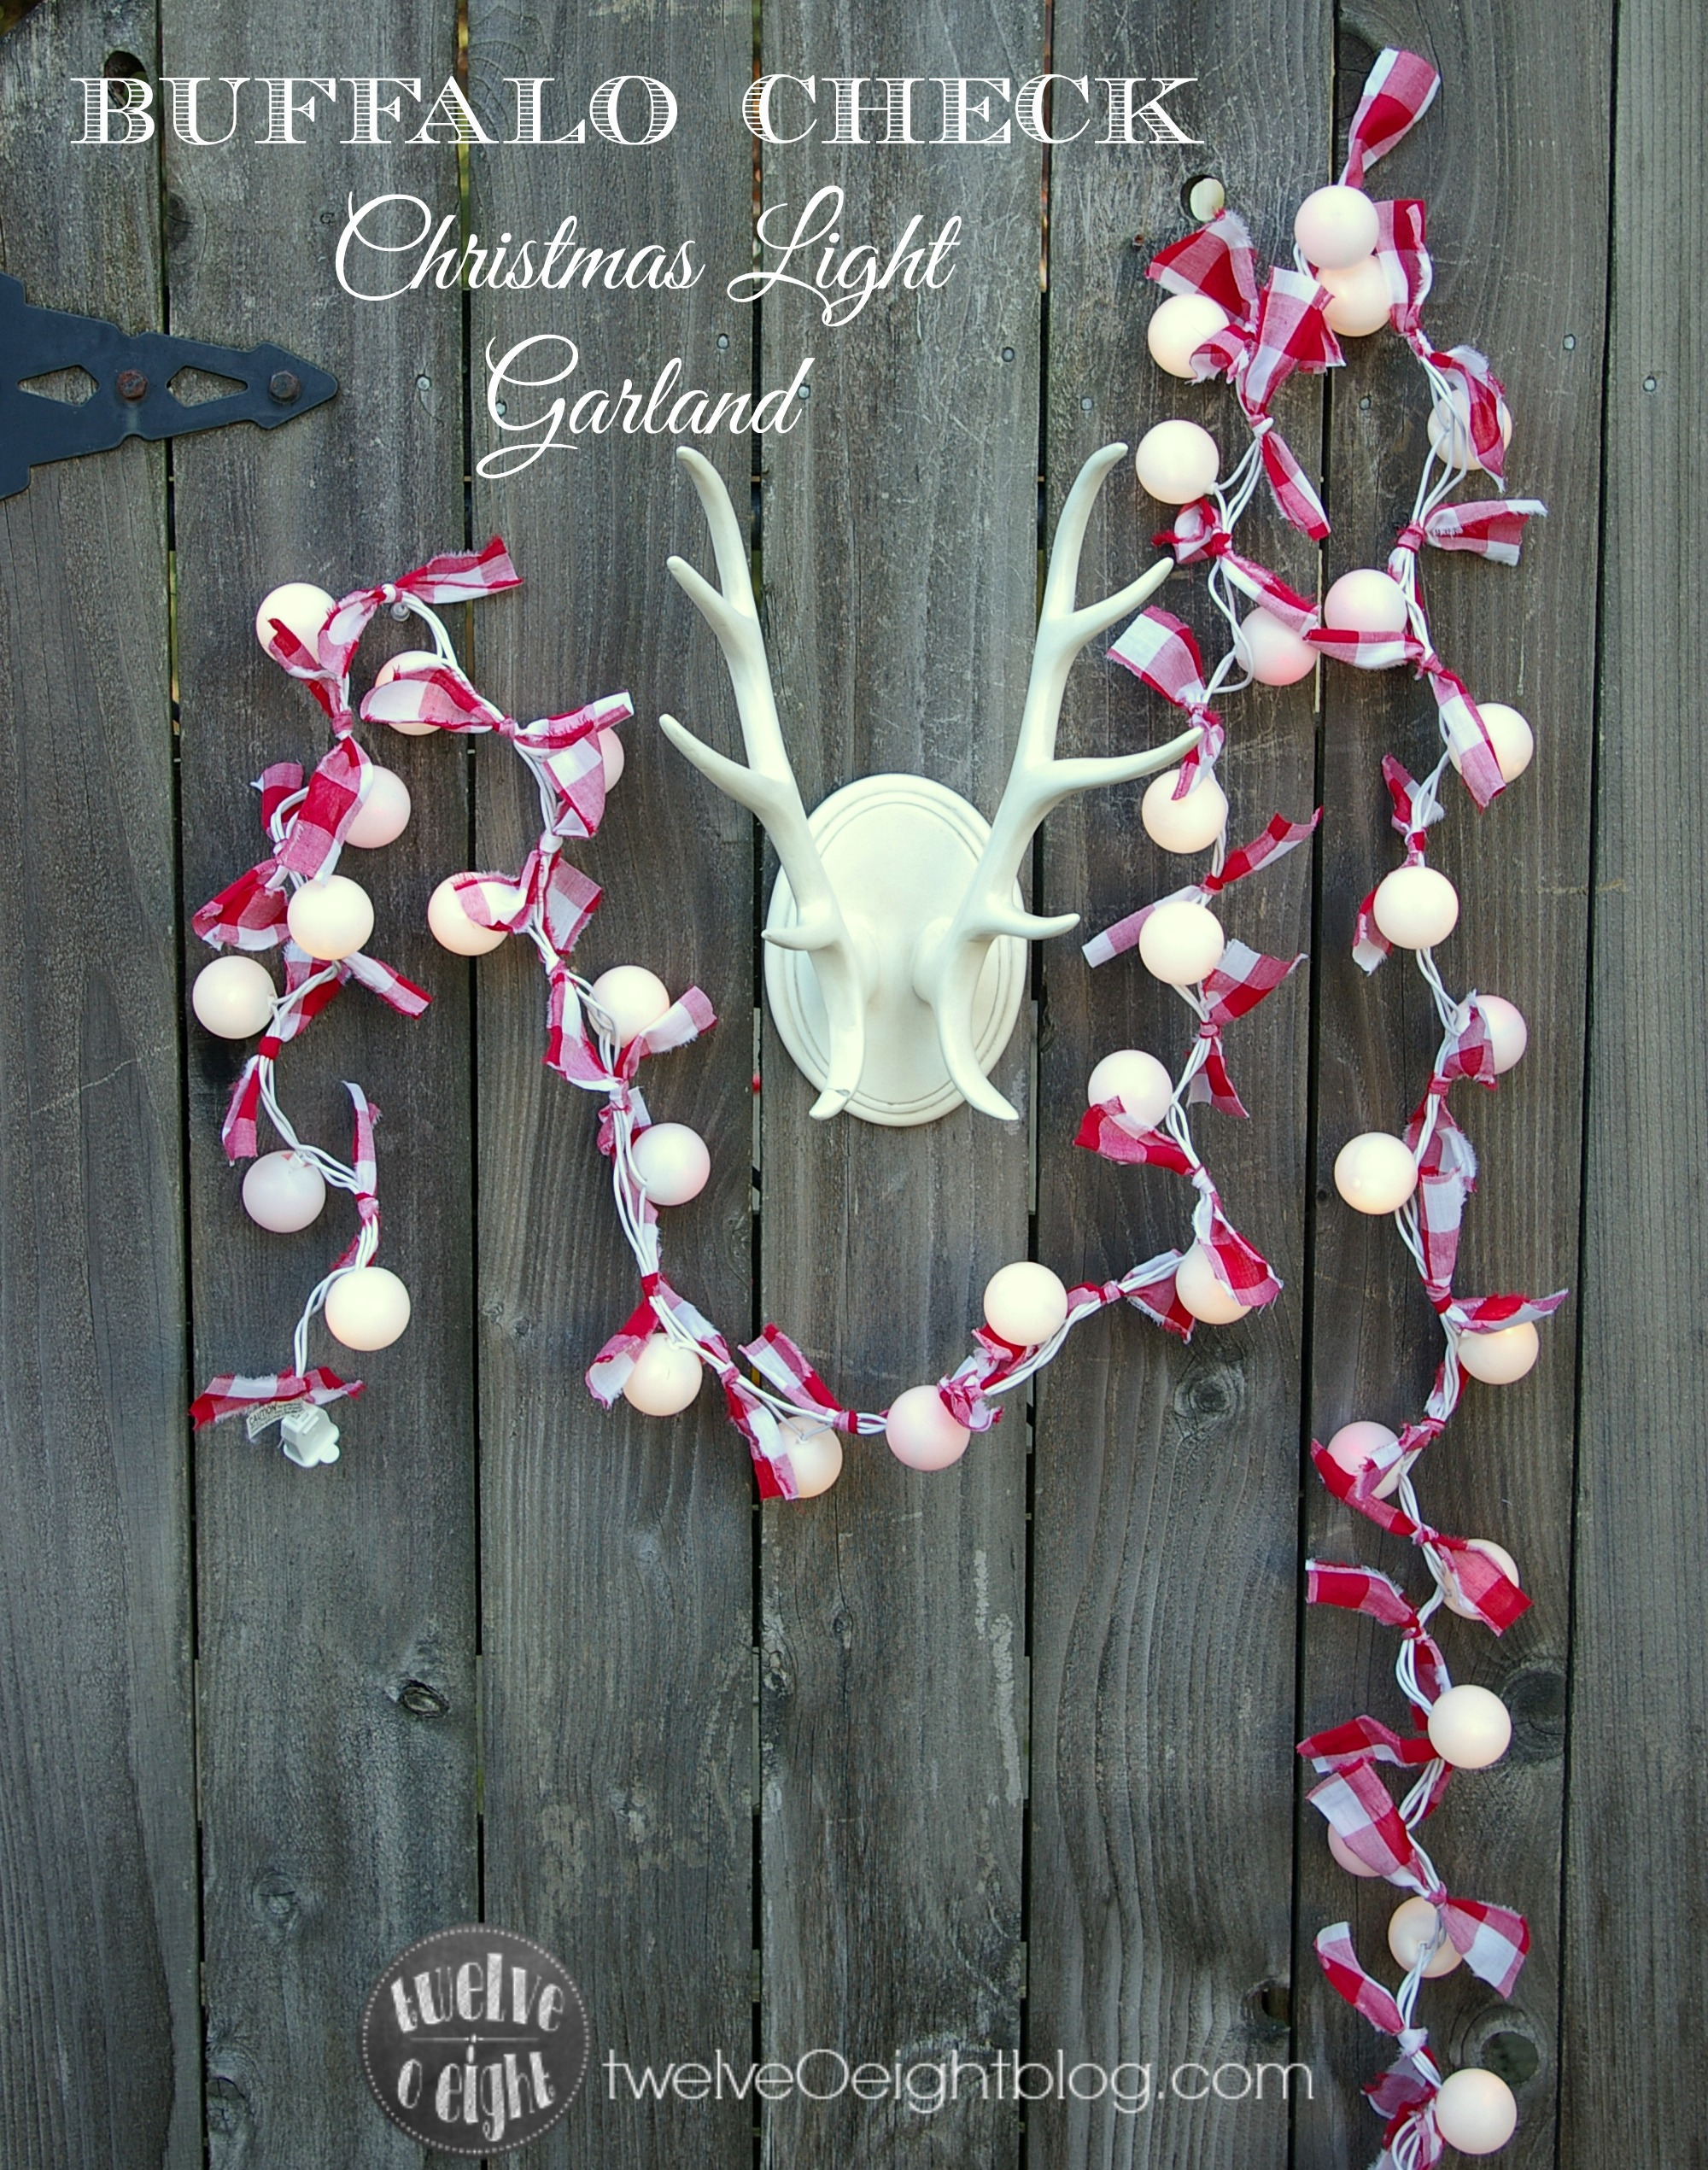 Buffalo Check Christmas Wreath.Red White Buffalo Check Christmas Light Garland Twelveoeight